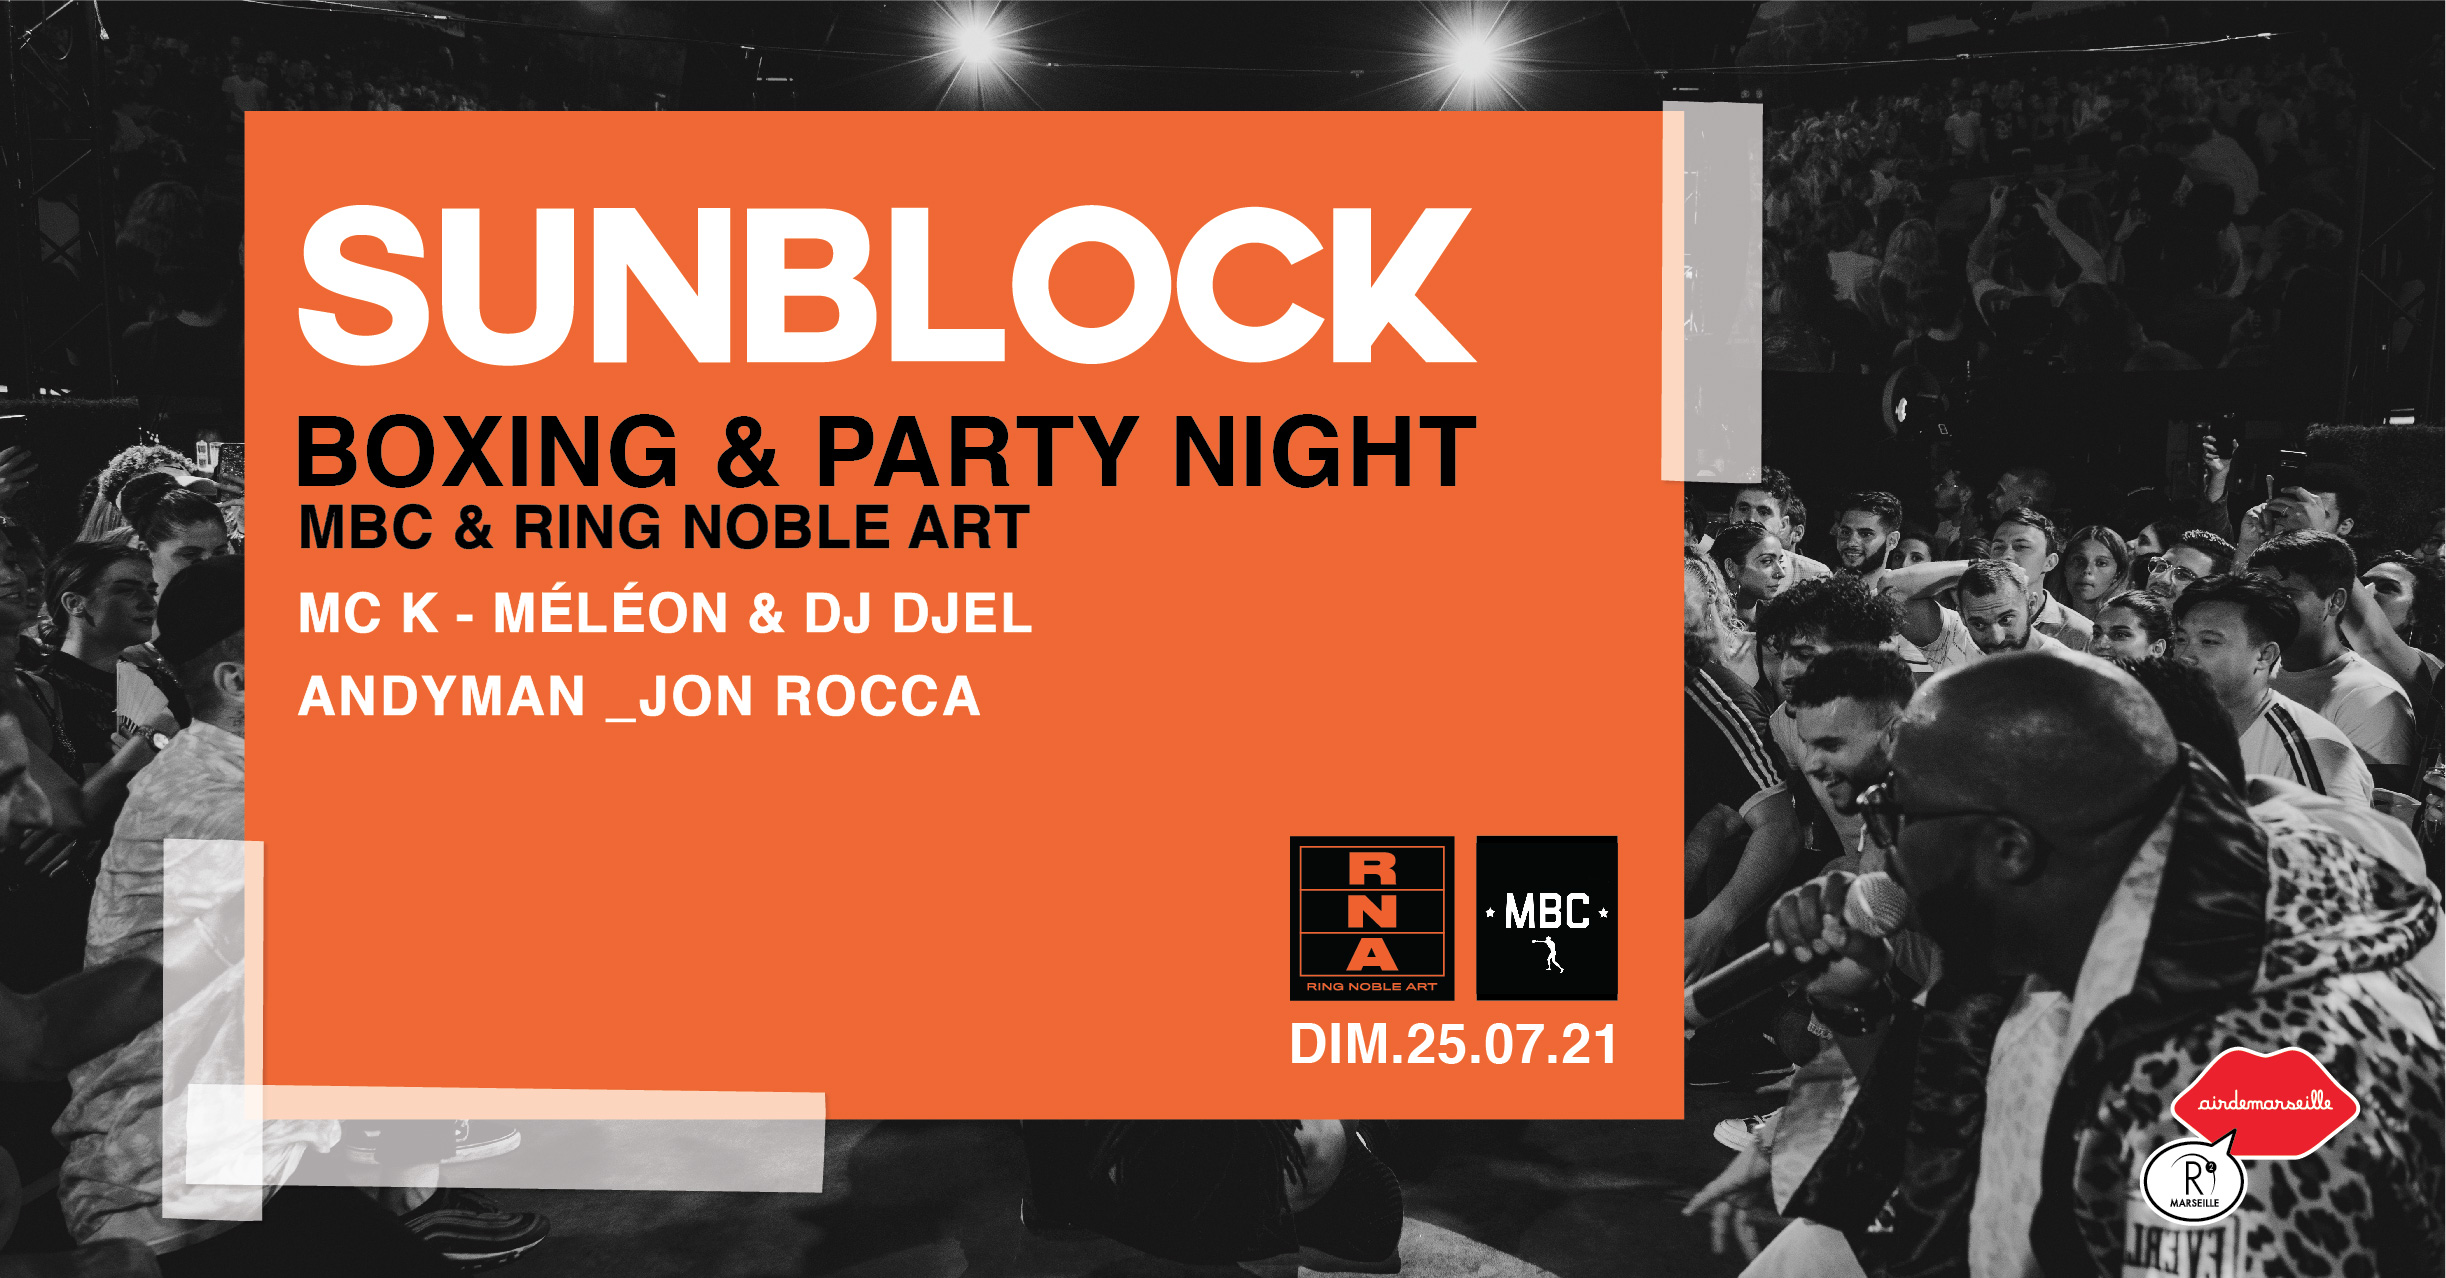 SUNBLOCK - BOXING NIGHT AND PARTY NIGHT